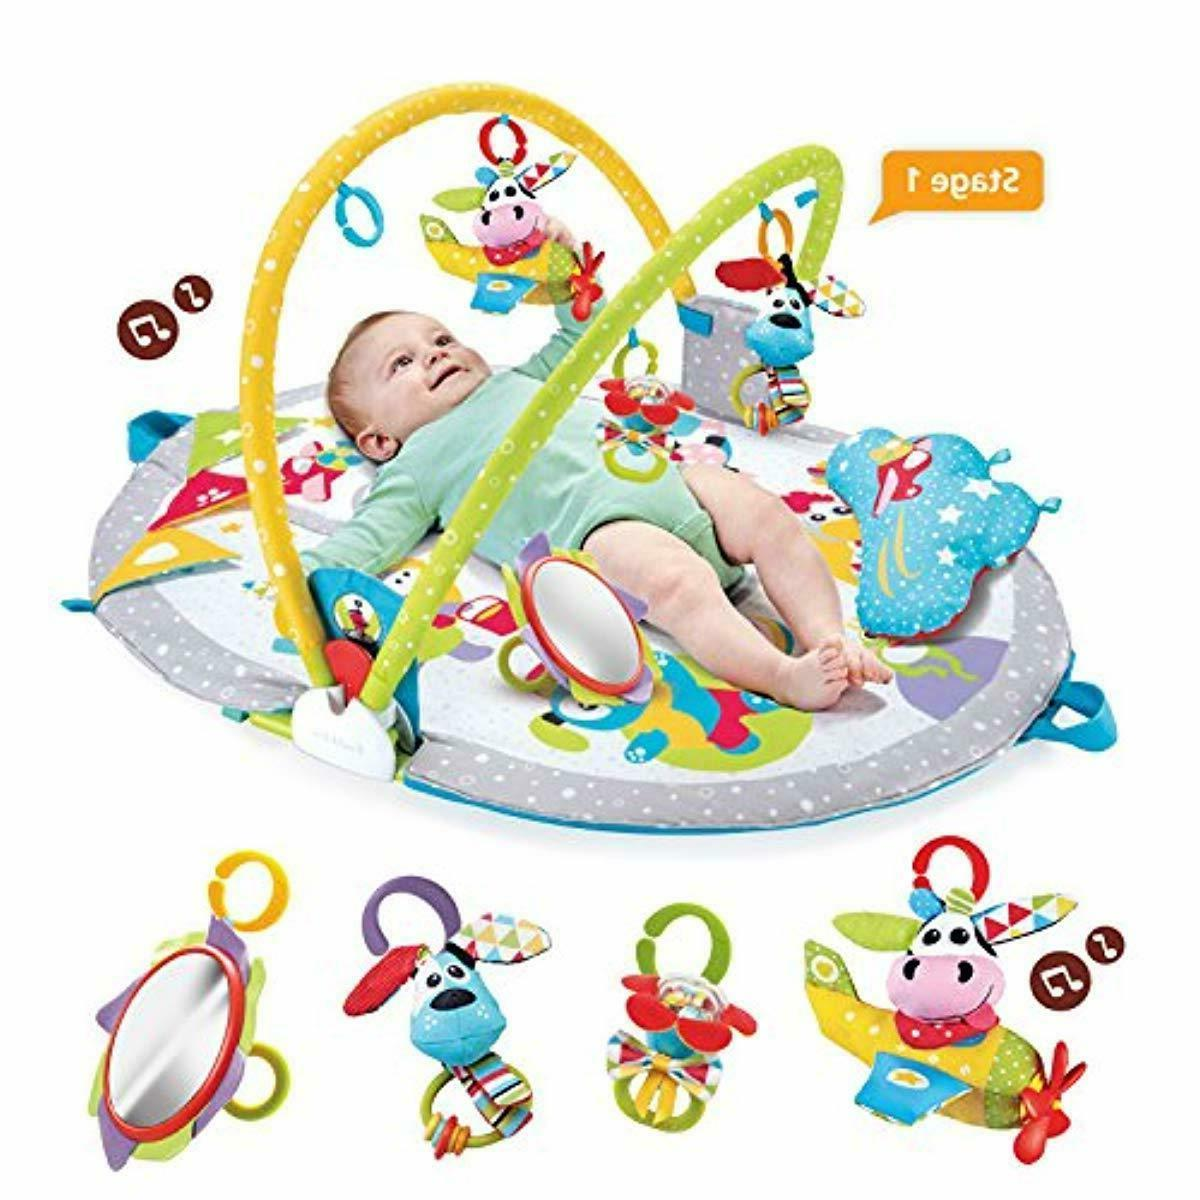 Baby Lay To Sit Up Play Mat Infant Activity Toy Newborns Month